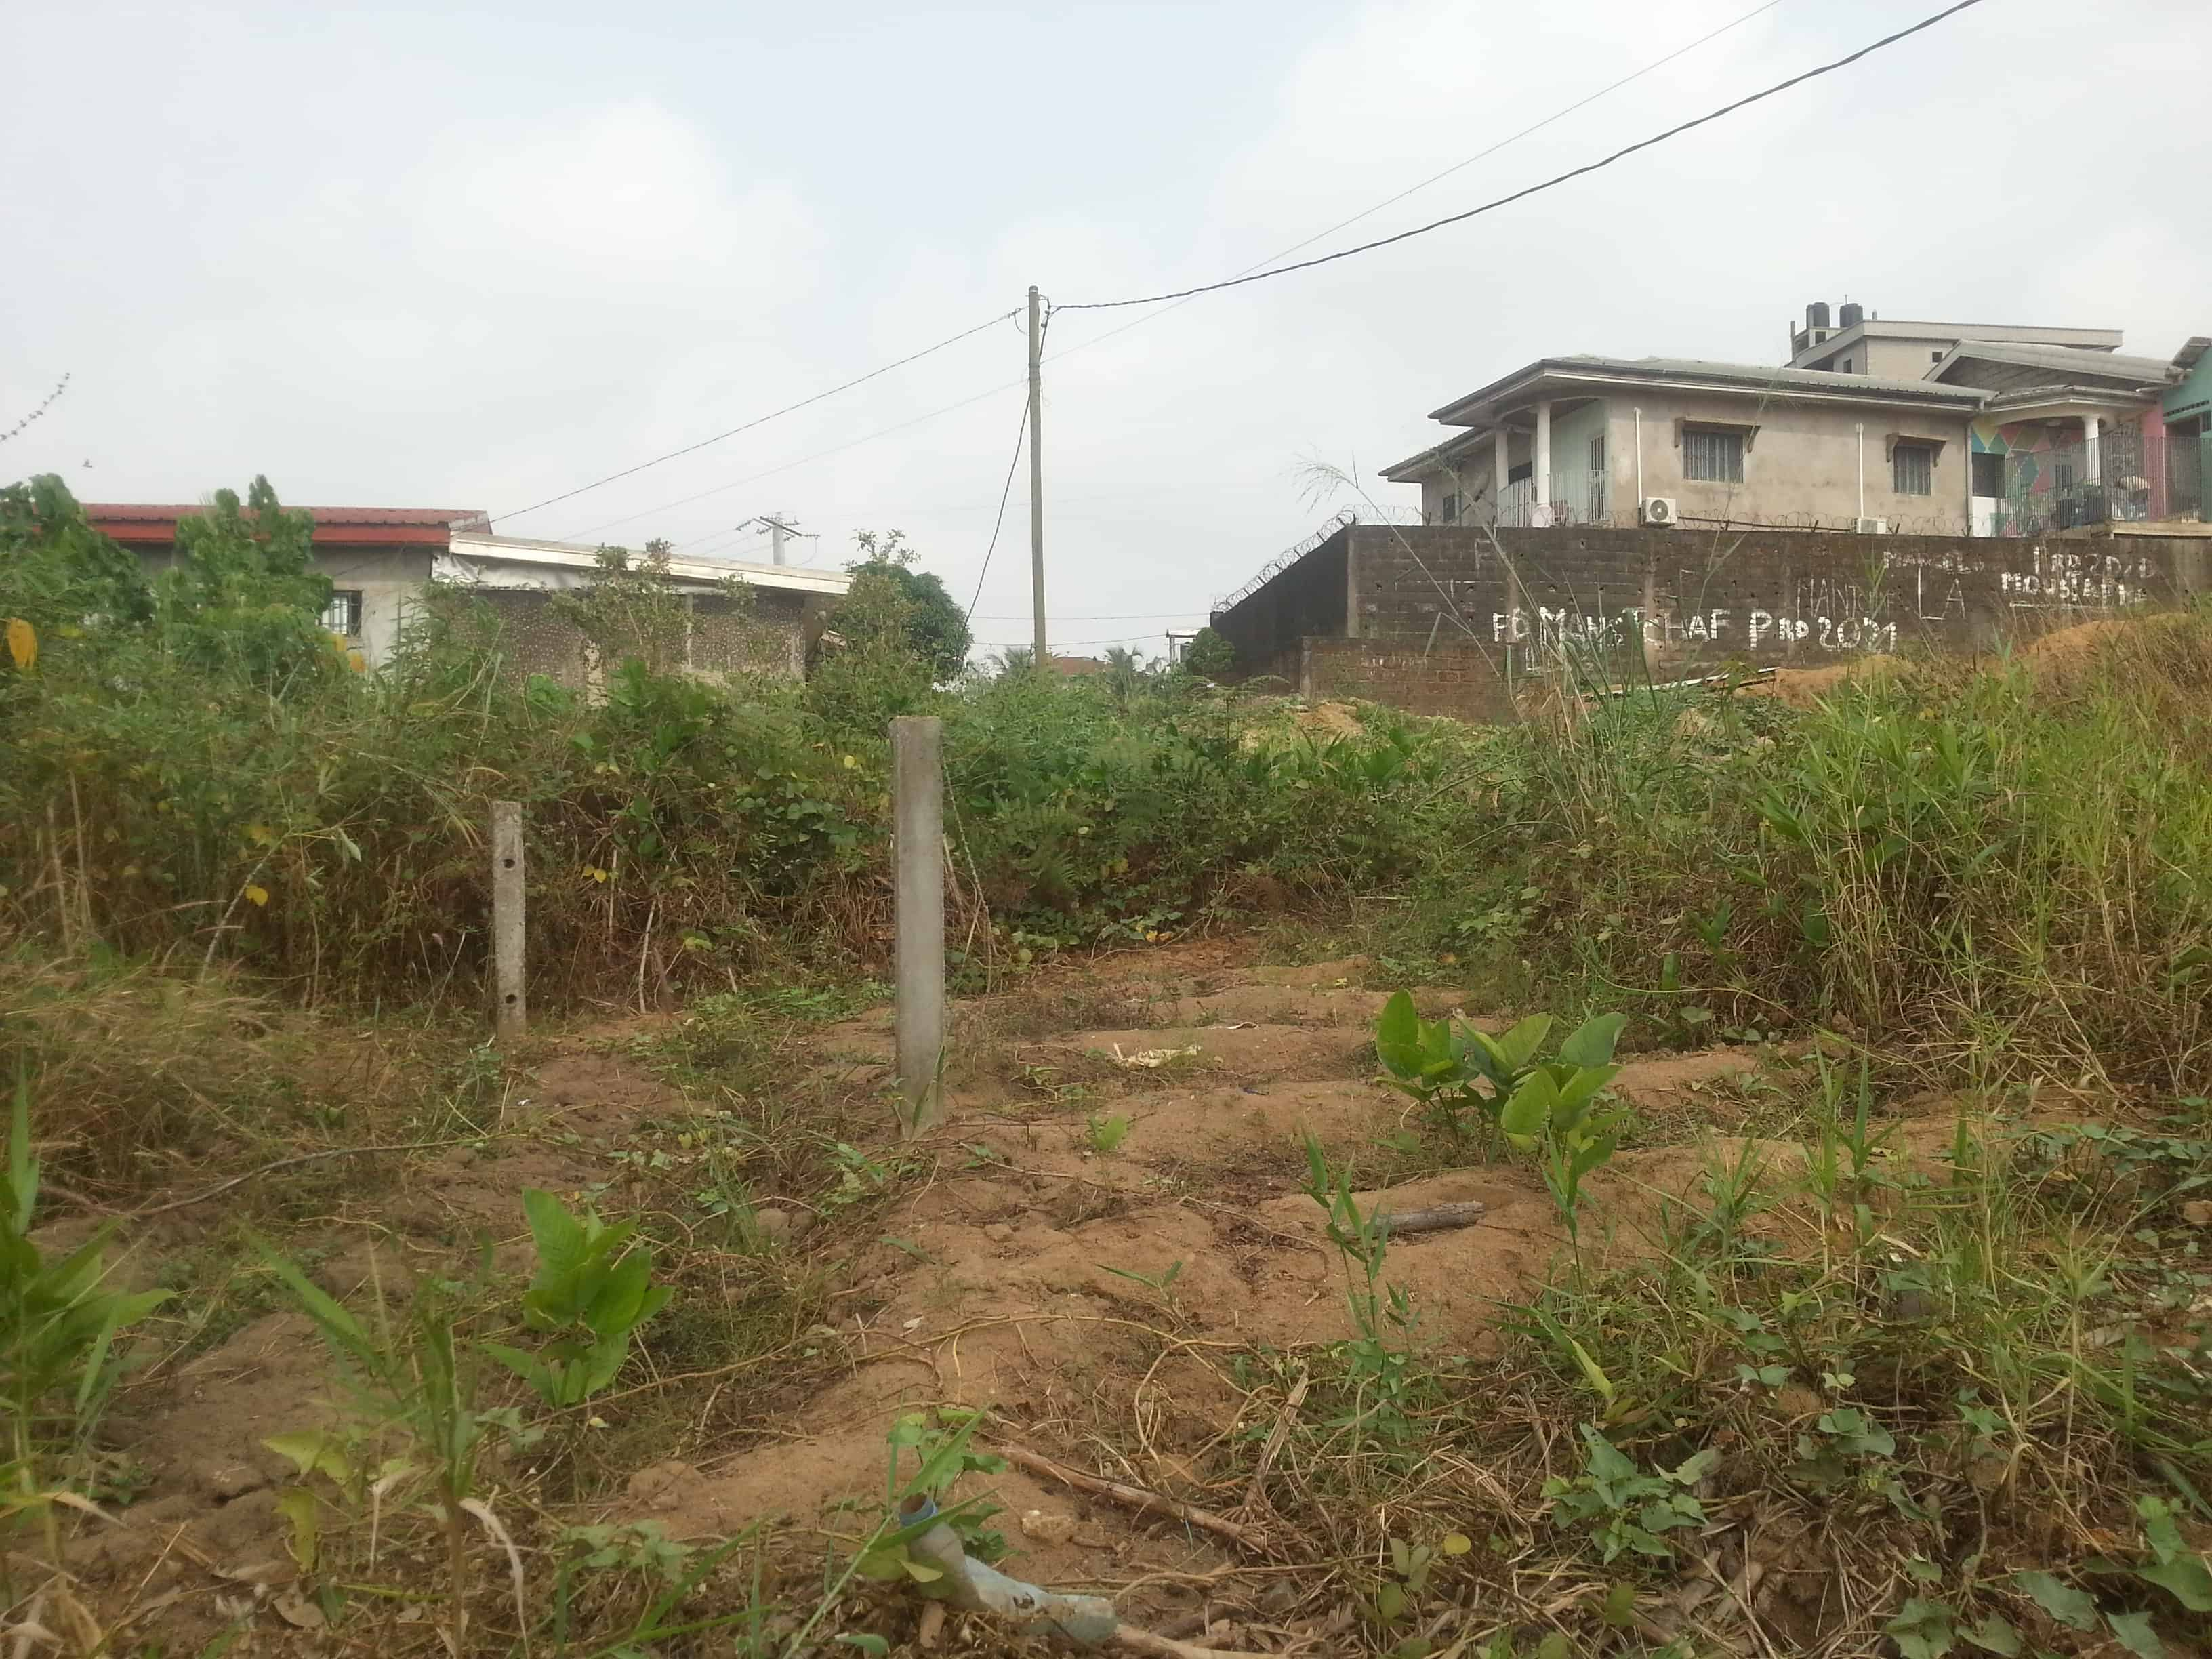 Land for sale at Douala, Logpom, montana city - 444 m2 - 20 000 000 FCFA